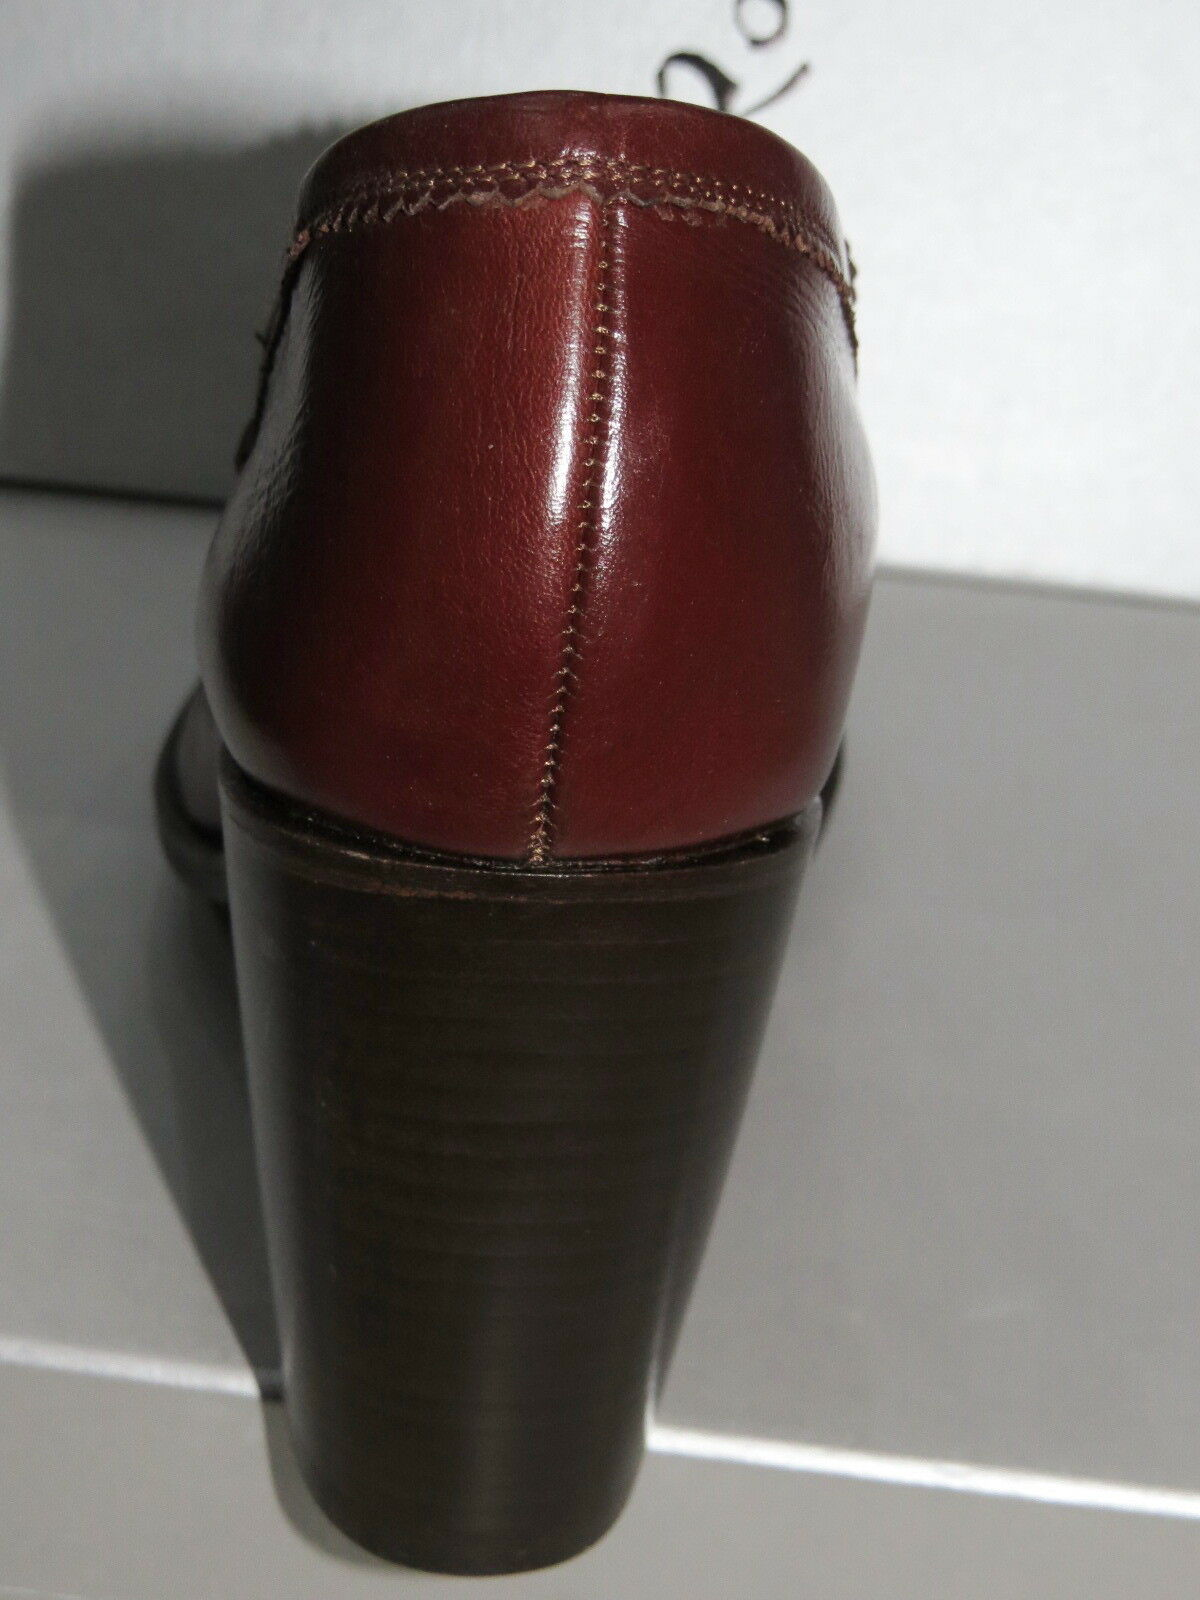 NEW ROCCO P Penny Loafer Pump Pump Pump Brown LEATHER SHOES SIZE 38 8 MADE IN ITALY  895 8a22f6